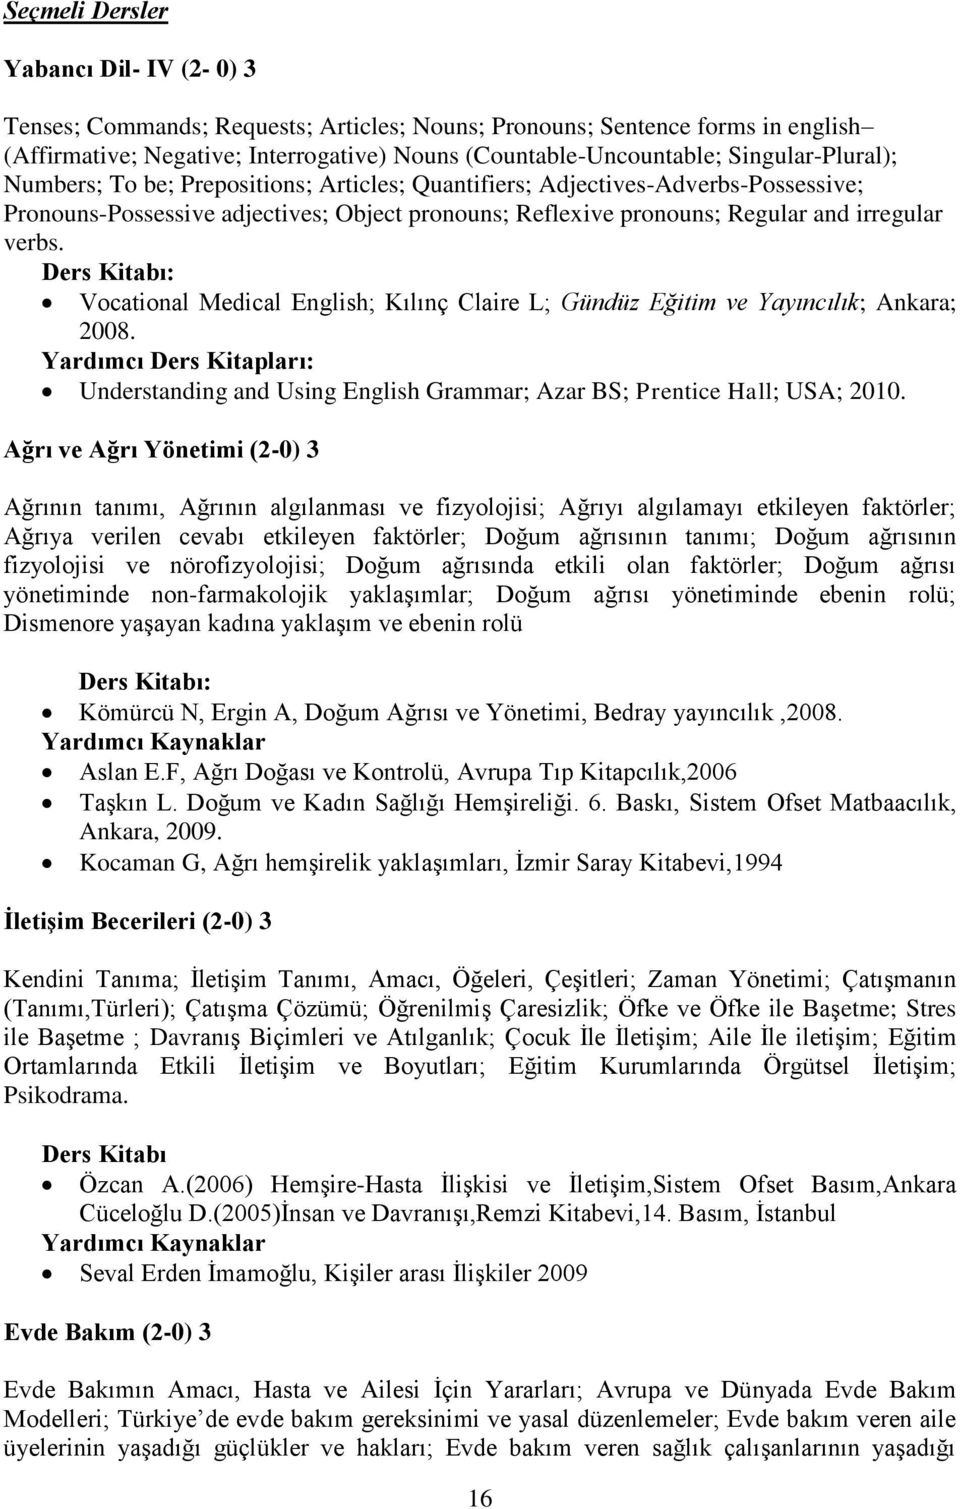 Vocational Medical English; Kılınç Claire L; Gündüz Eğitim ve Yayıncılık; Ankara; 2008. Understanding and Using English Grammar; Azar BS; Prentice Hall; USA; 2010.